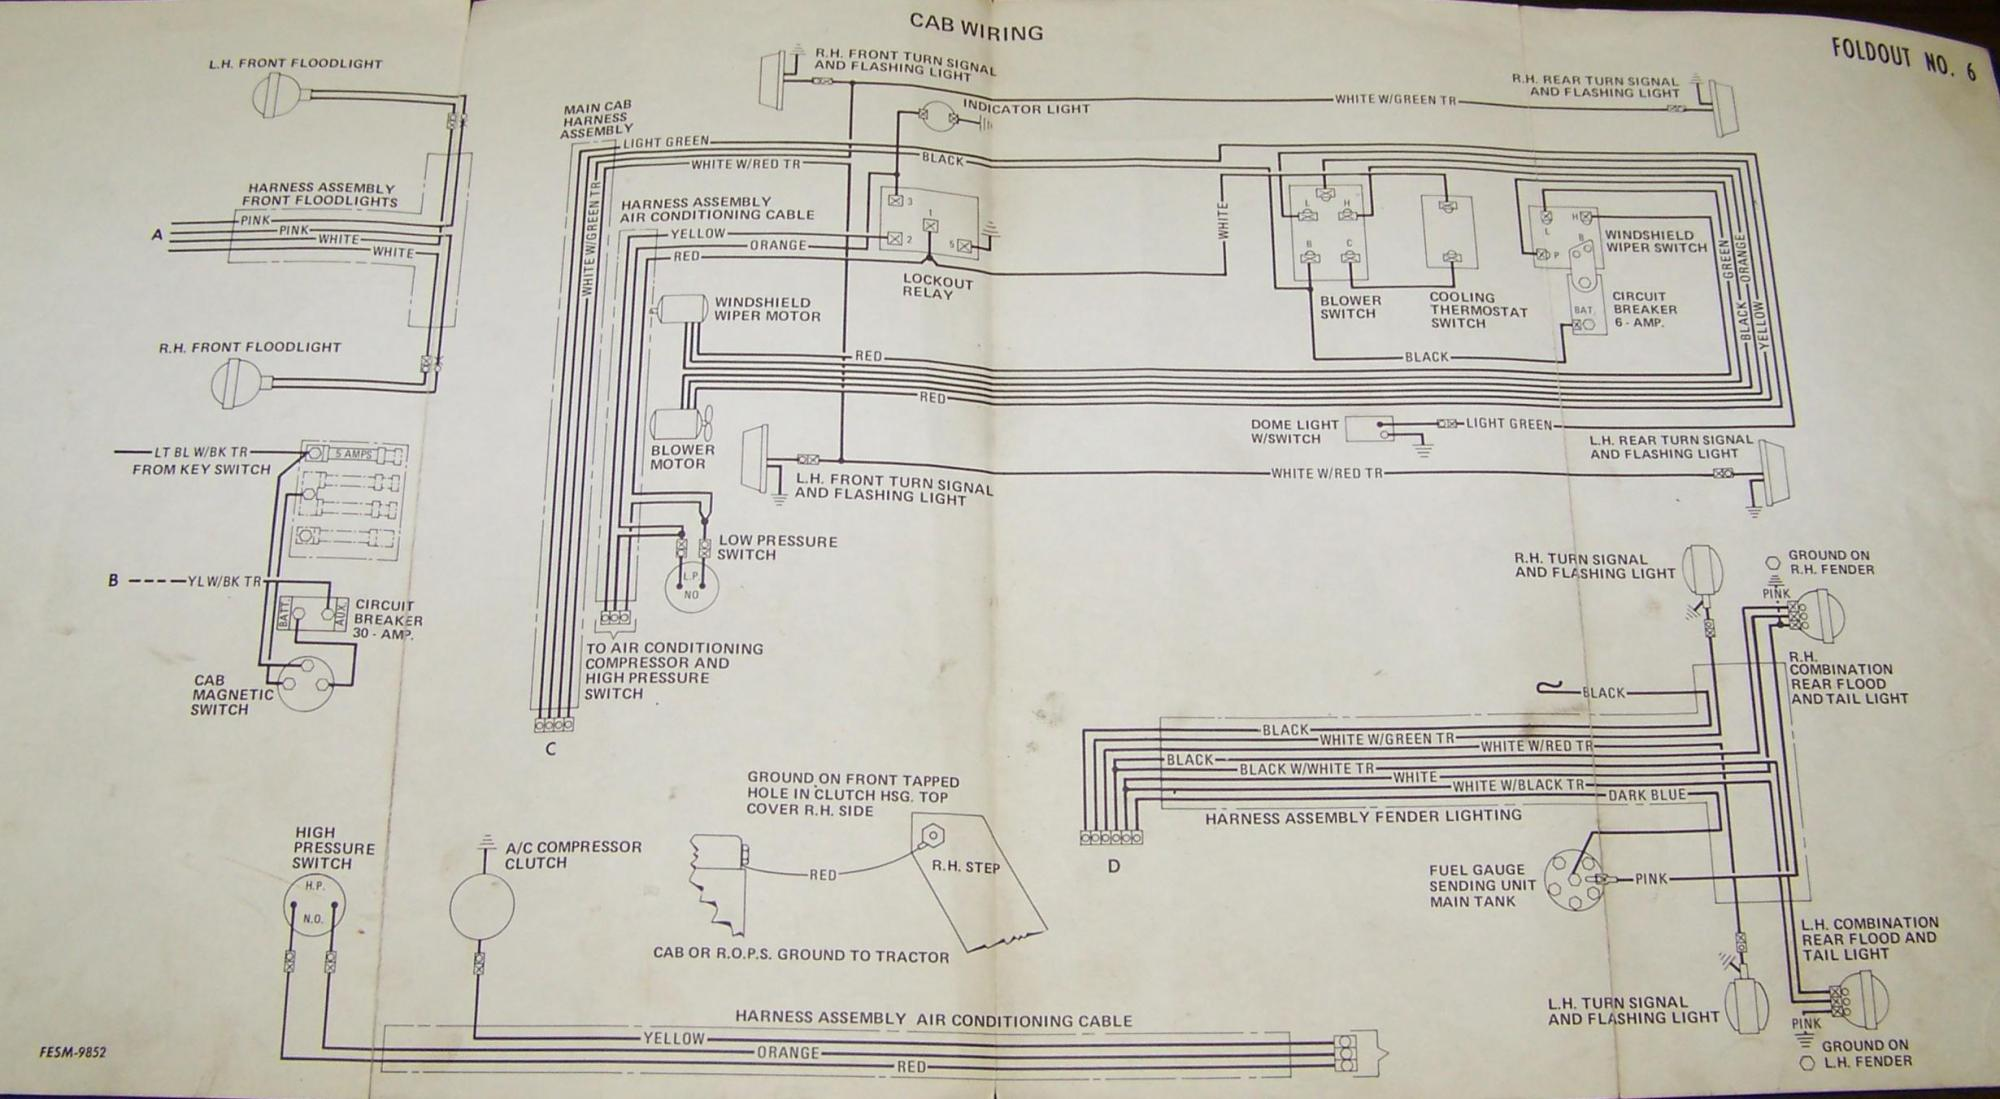 hight resolution of carter gruenewald co inc ih farmall tractor electrical wiring rh cngco com international h wiring diagram farmall 706 wiring diagram